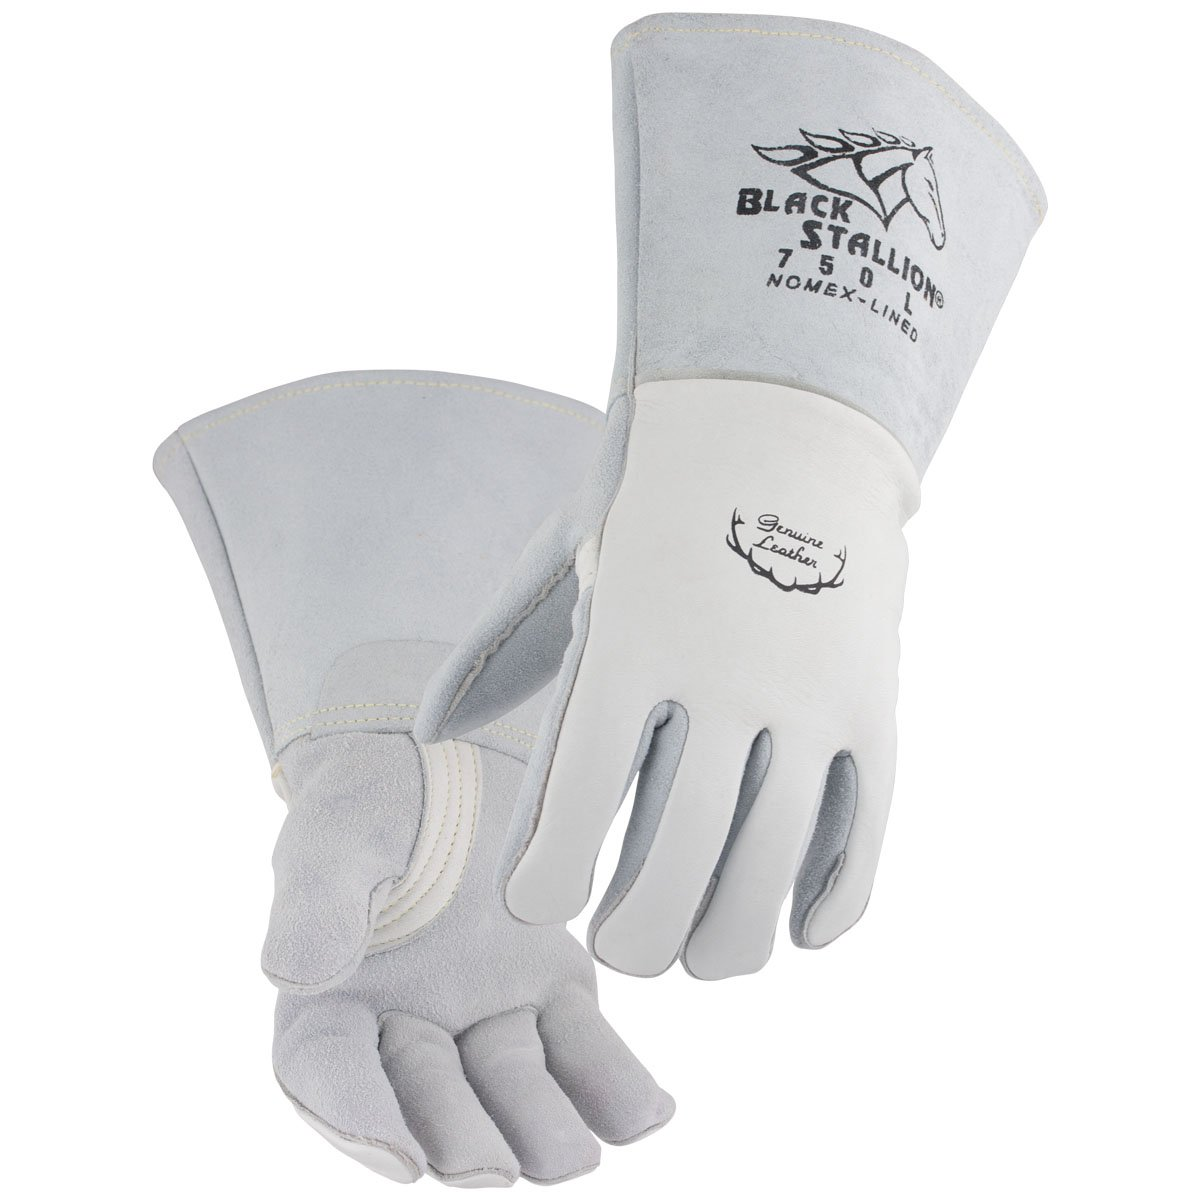 Black Stallion 750 Premium Grain Elkskin Stick Welding Gloves, Large